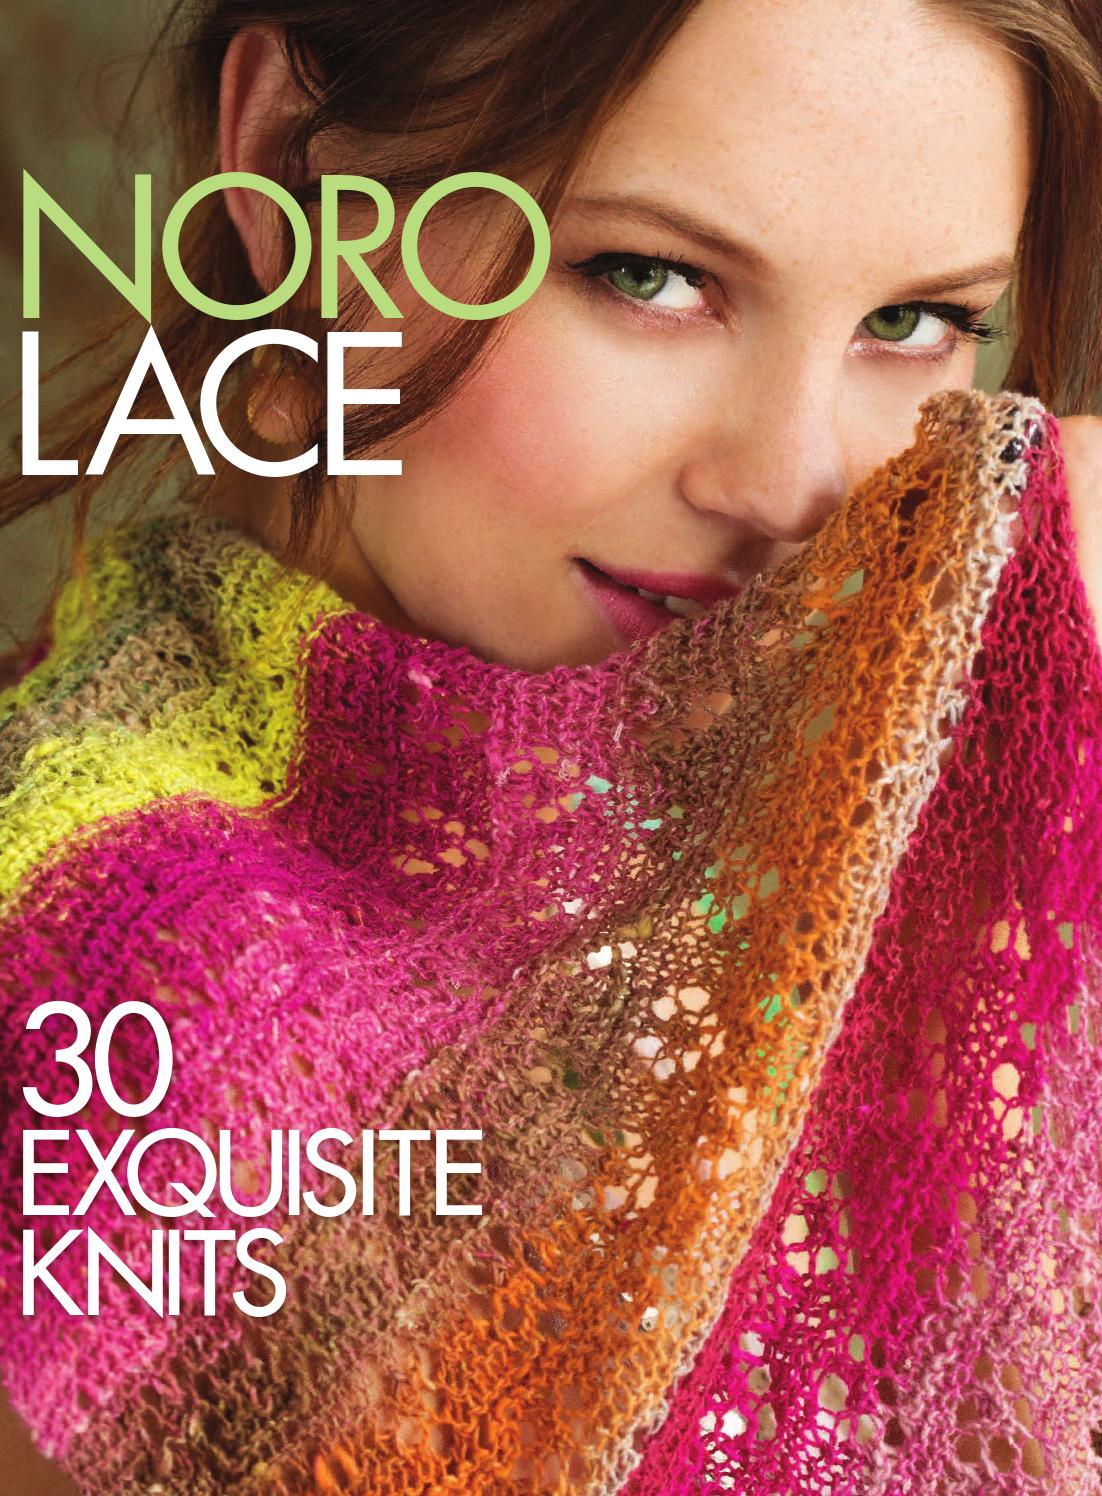 Issuu  Noro Lace 30 Exquisite Knits By Sixth&spring Books